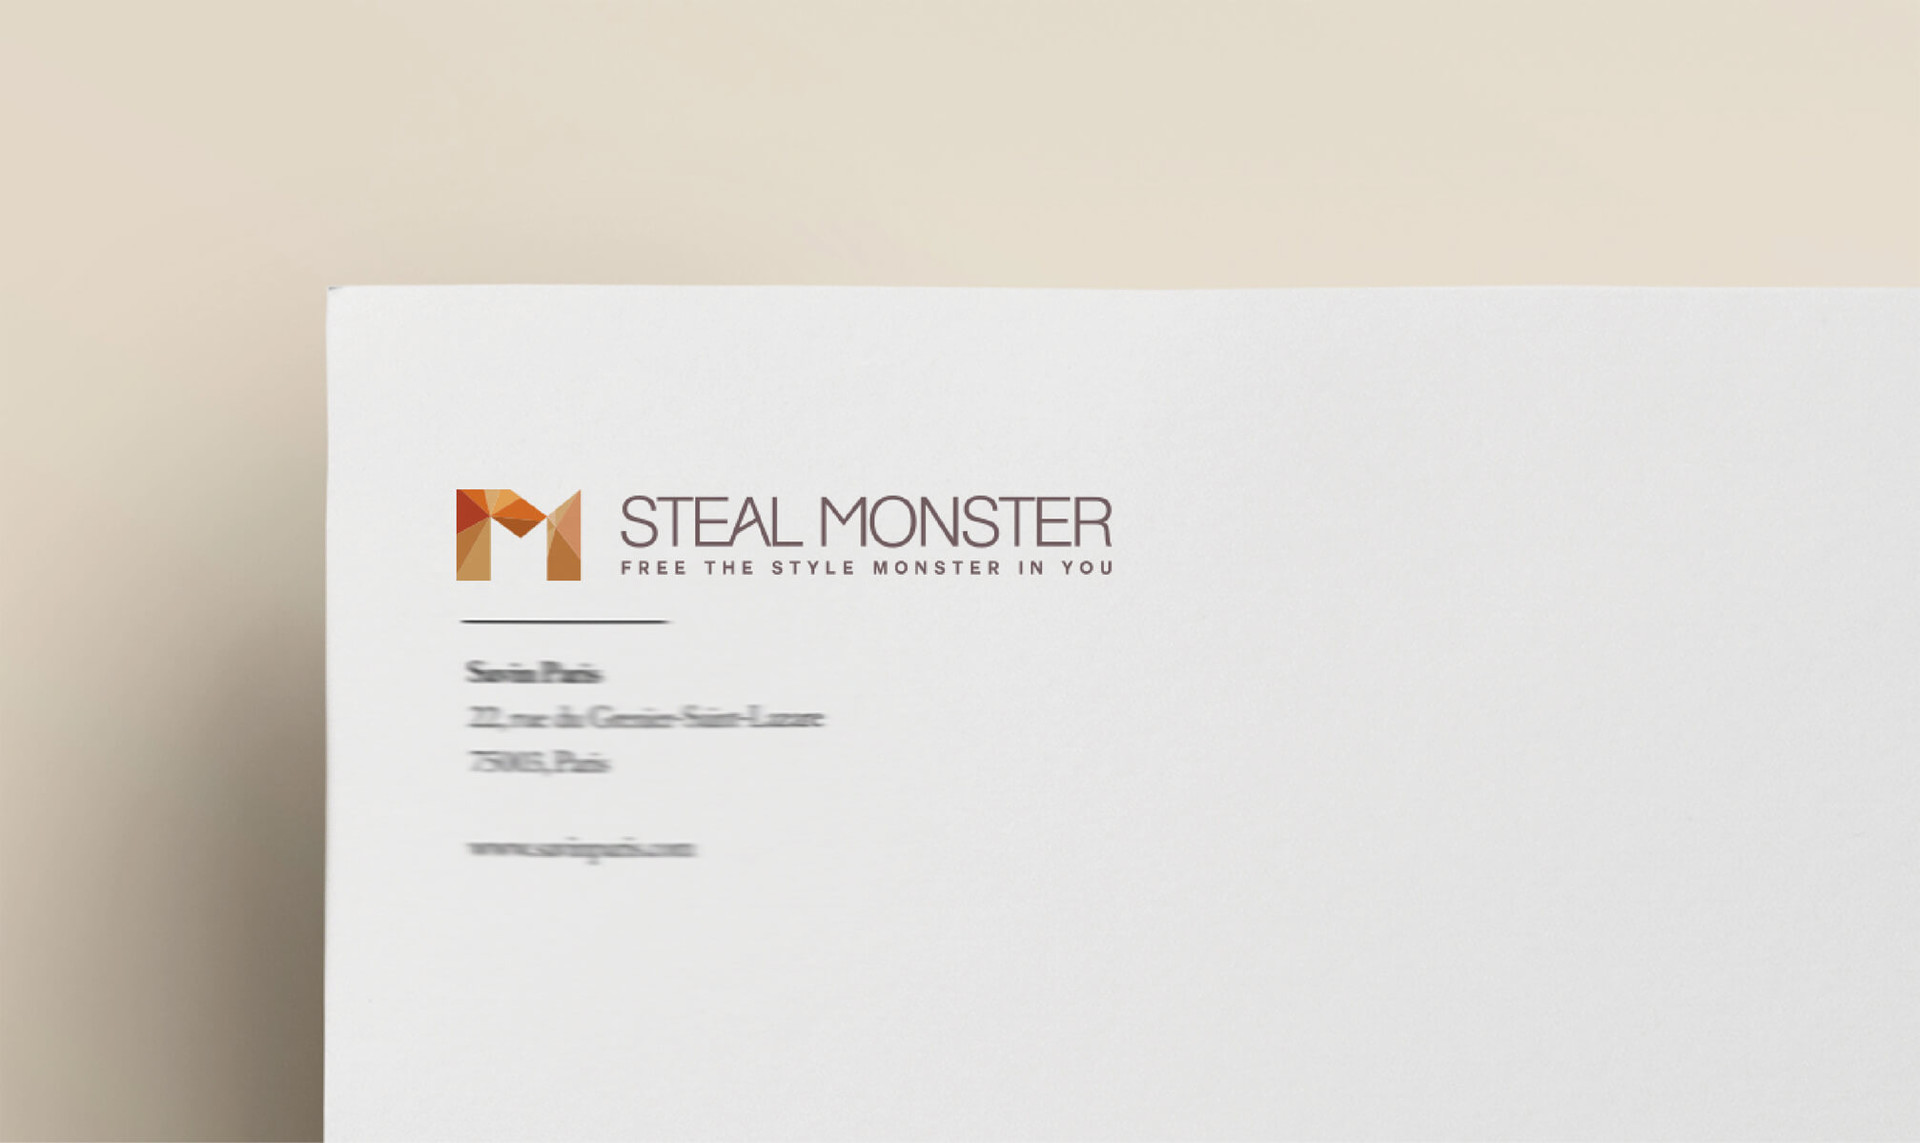 STEAL MONSTER